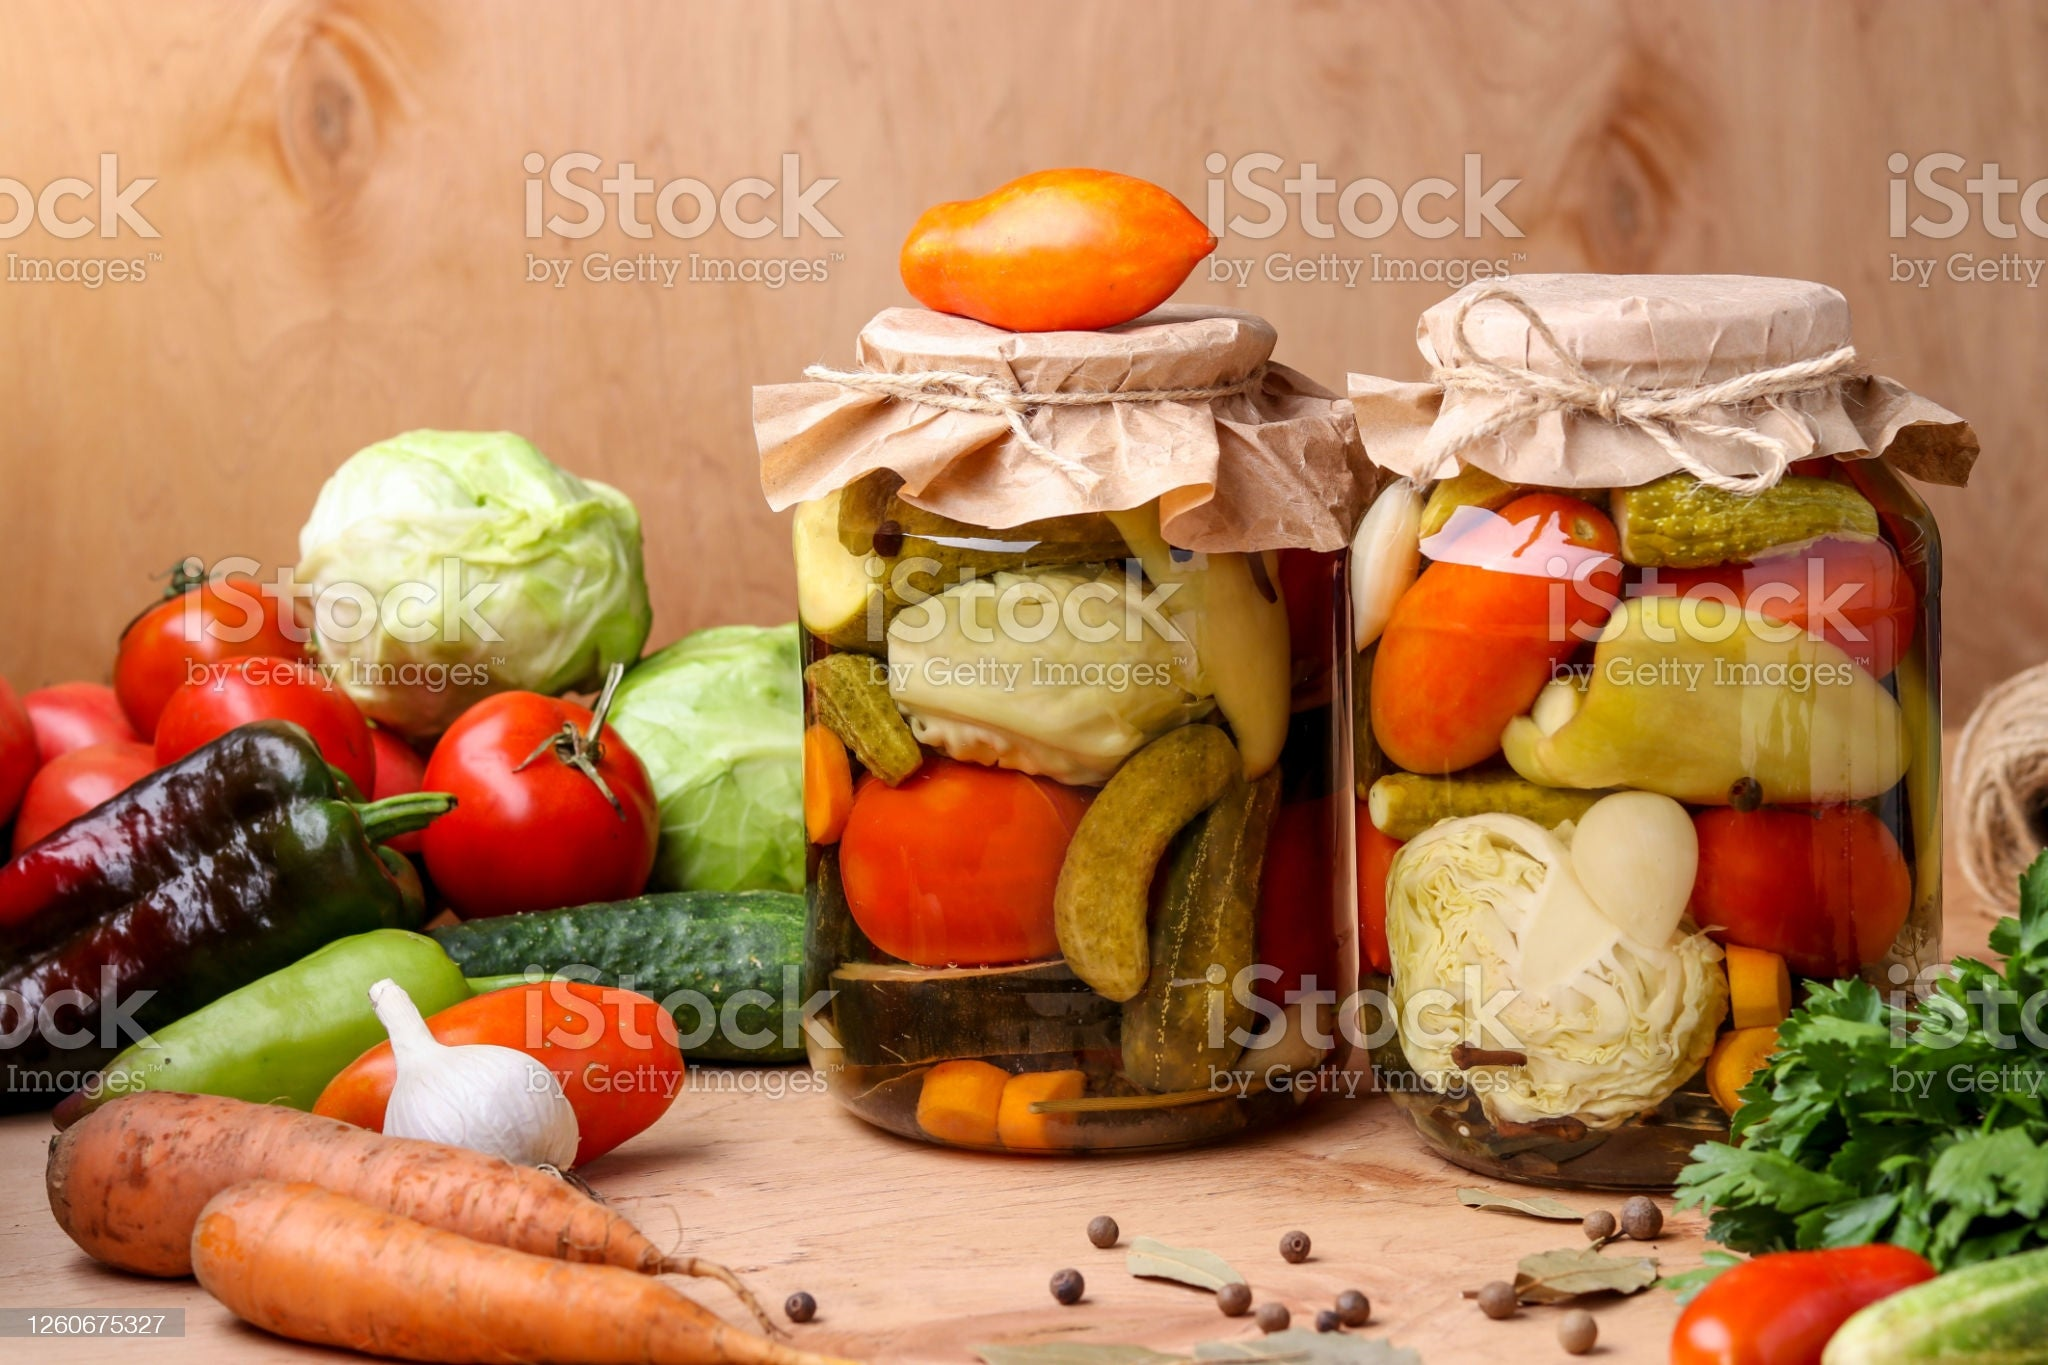 Eat Fermented Foods and Take Probiotics